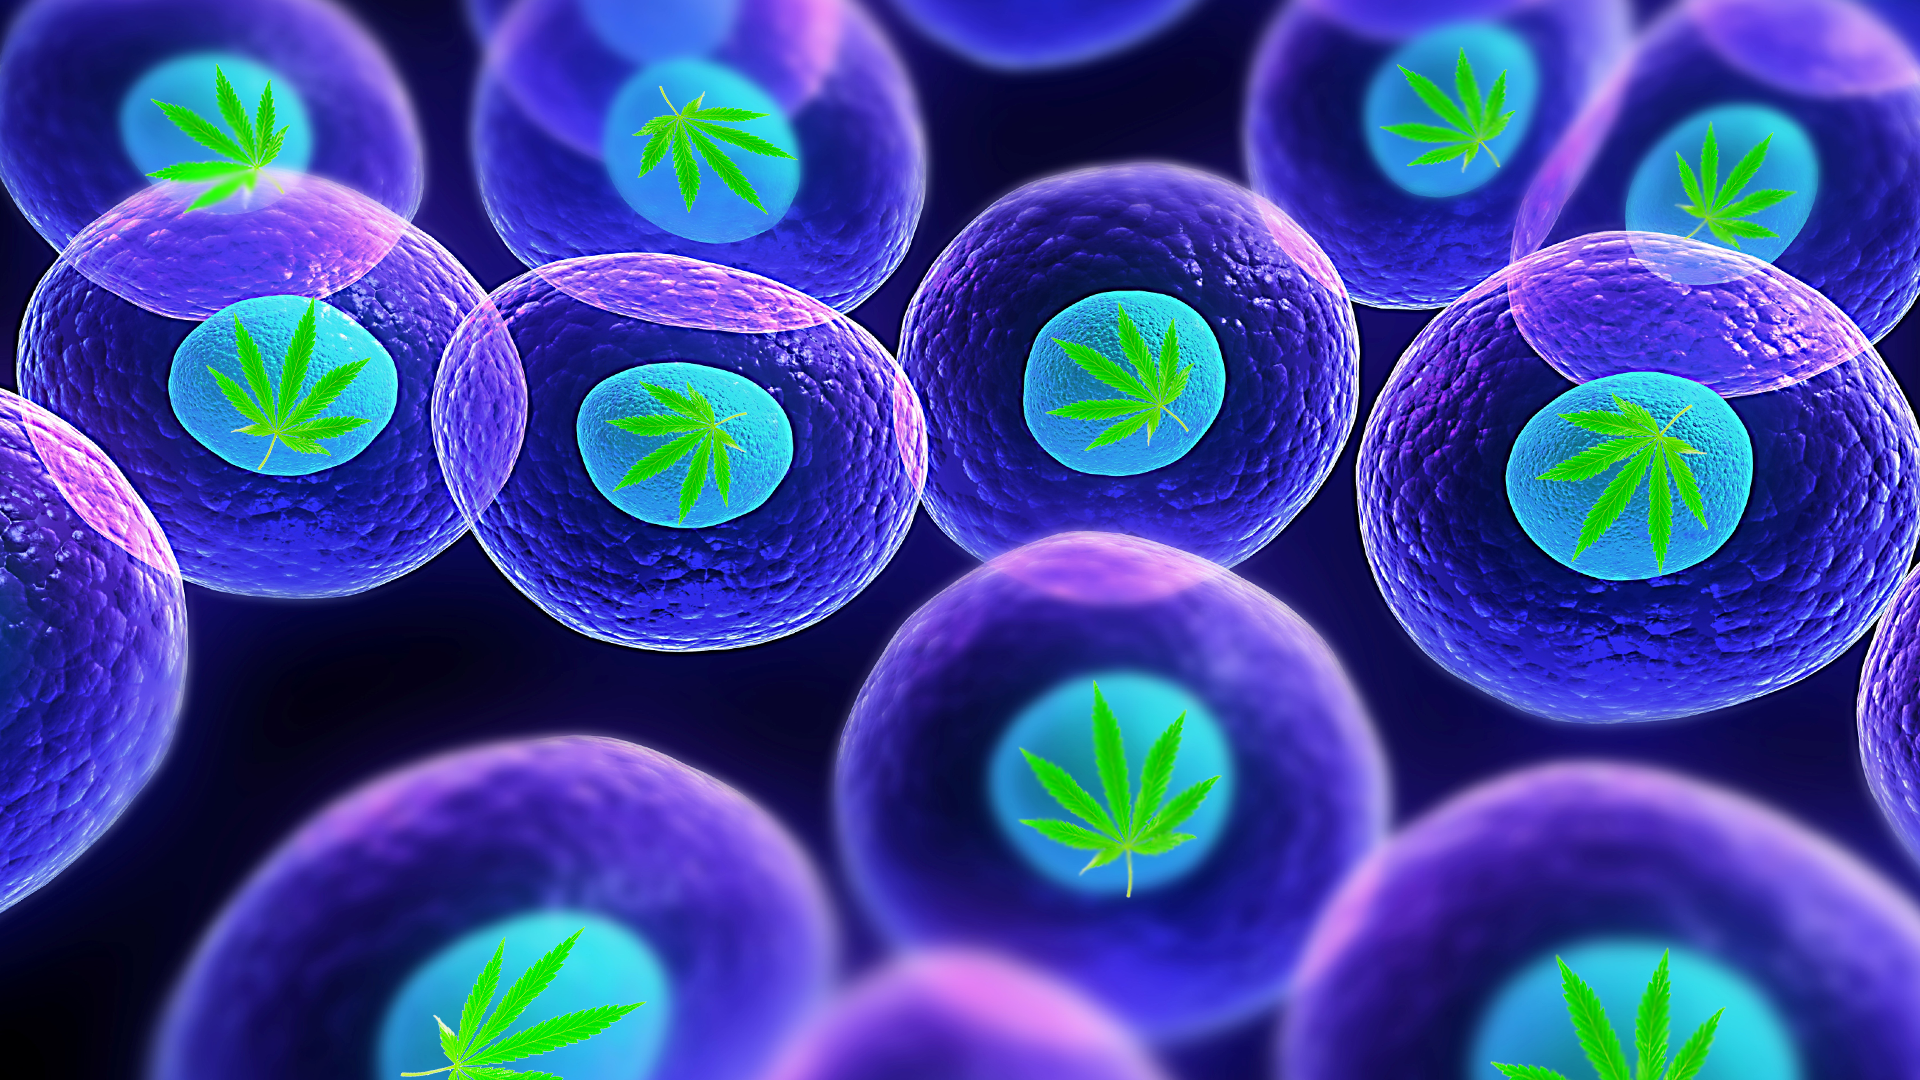 Weed & Human Cells Banner